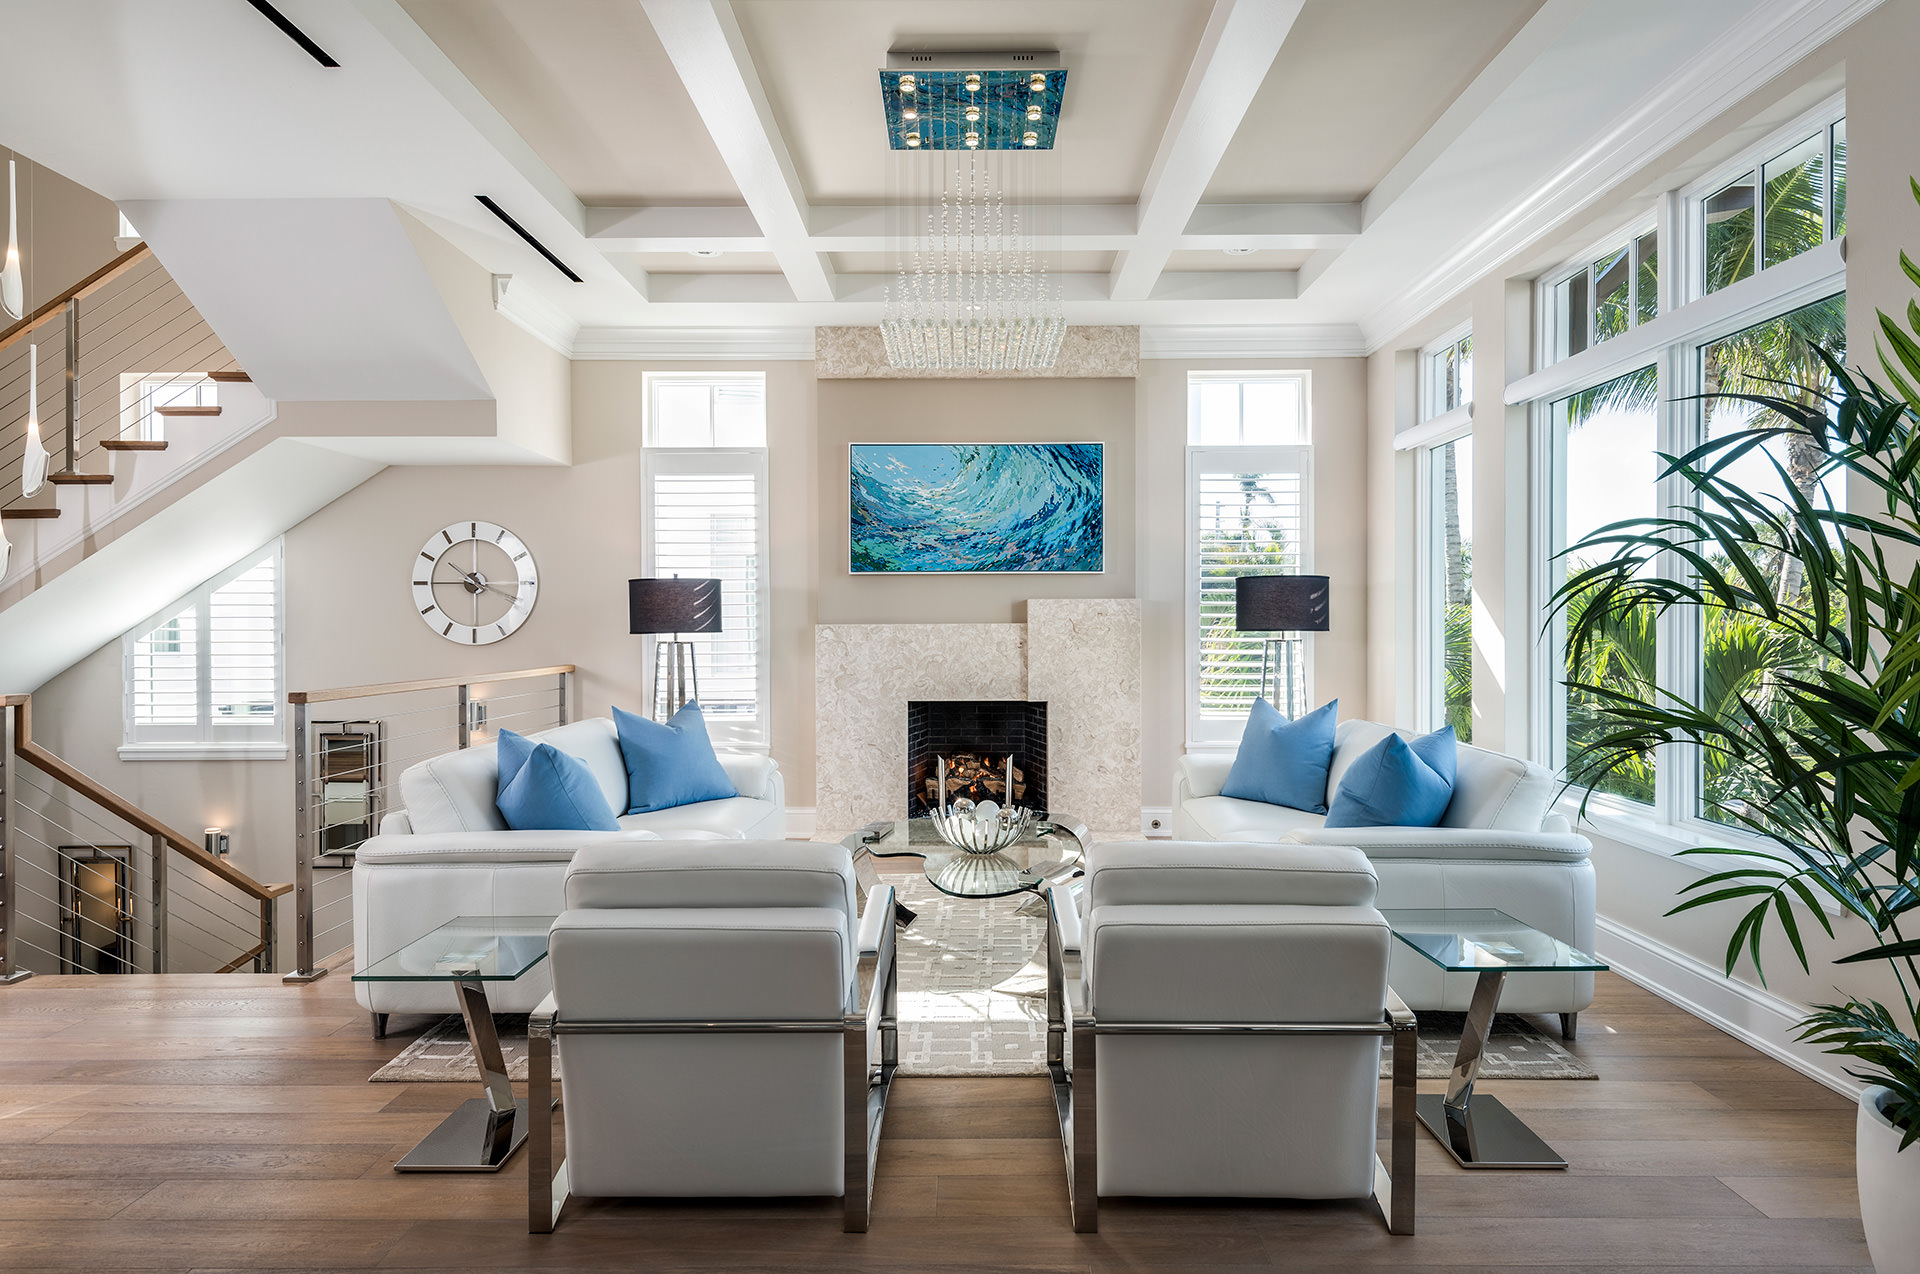 Luxury Remodel - Naples Florida